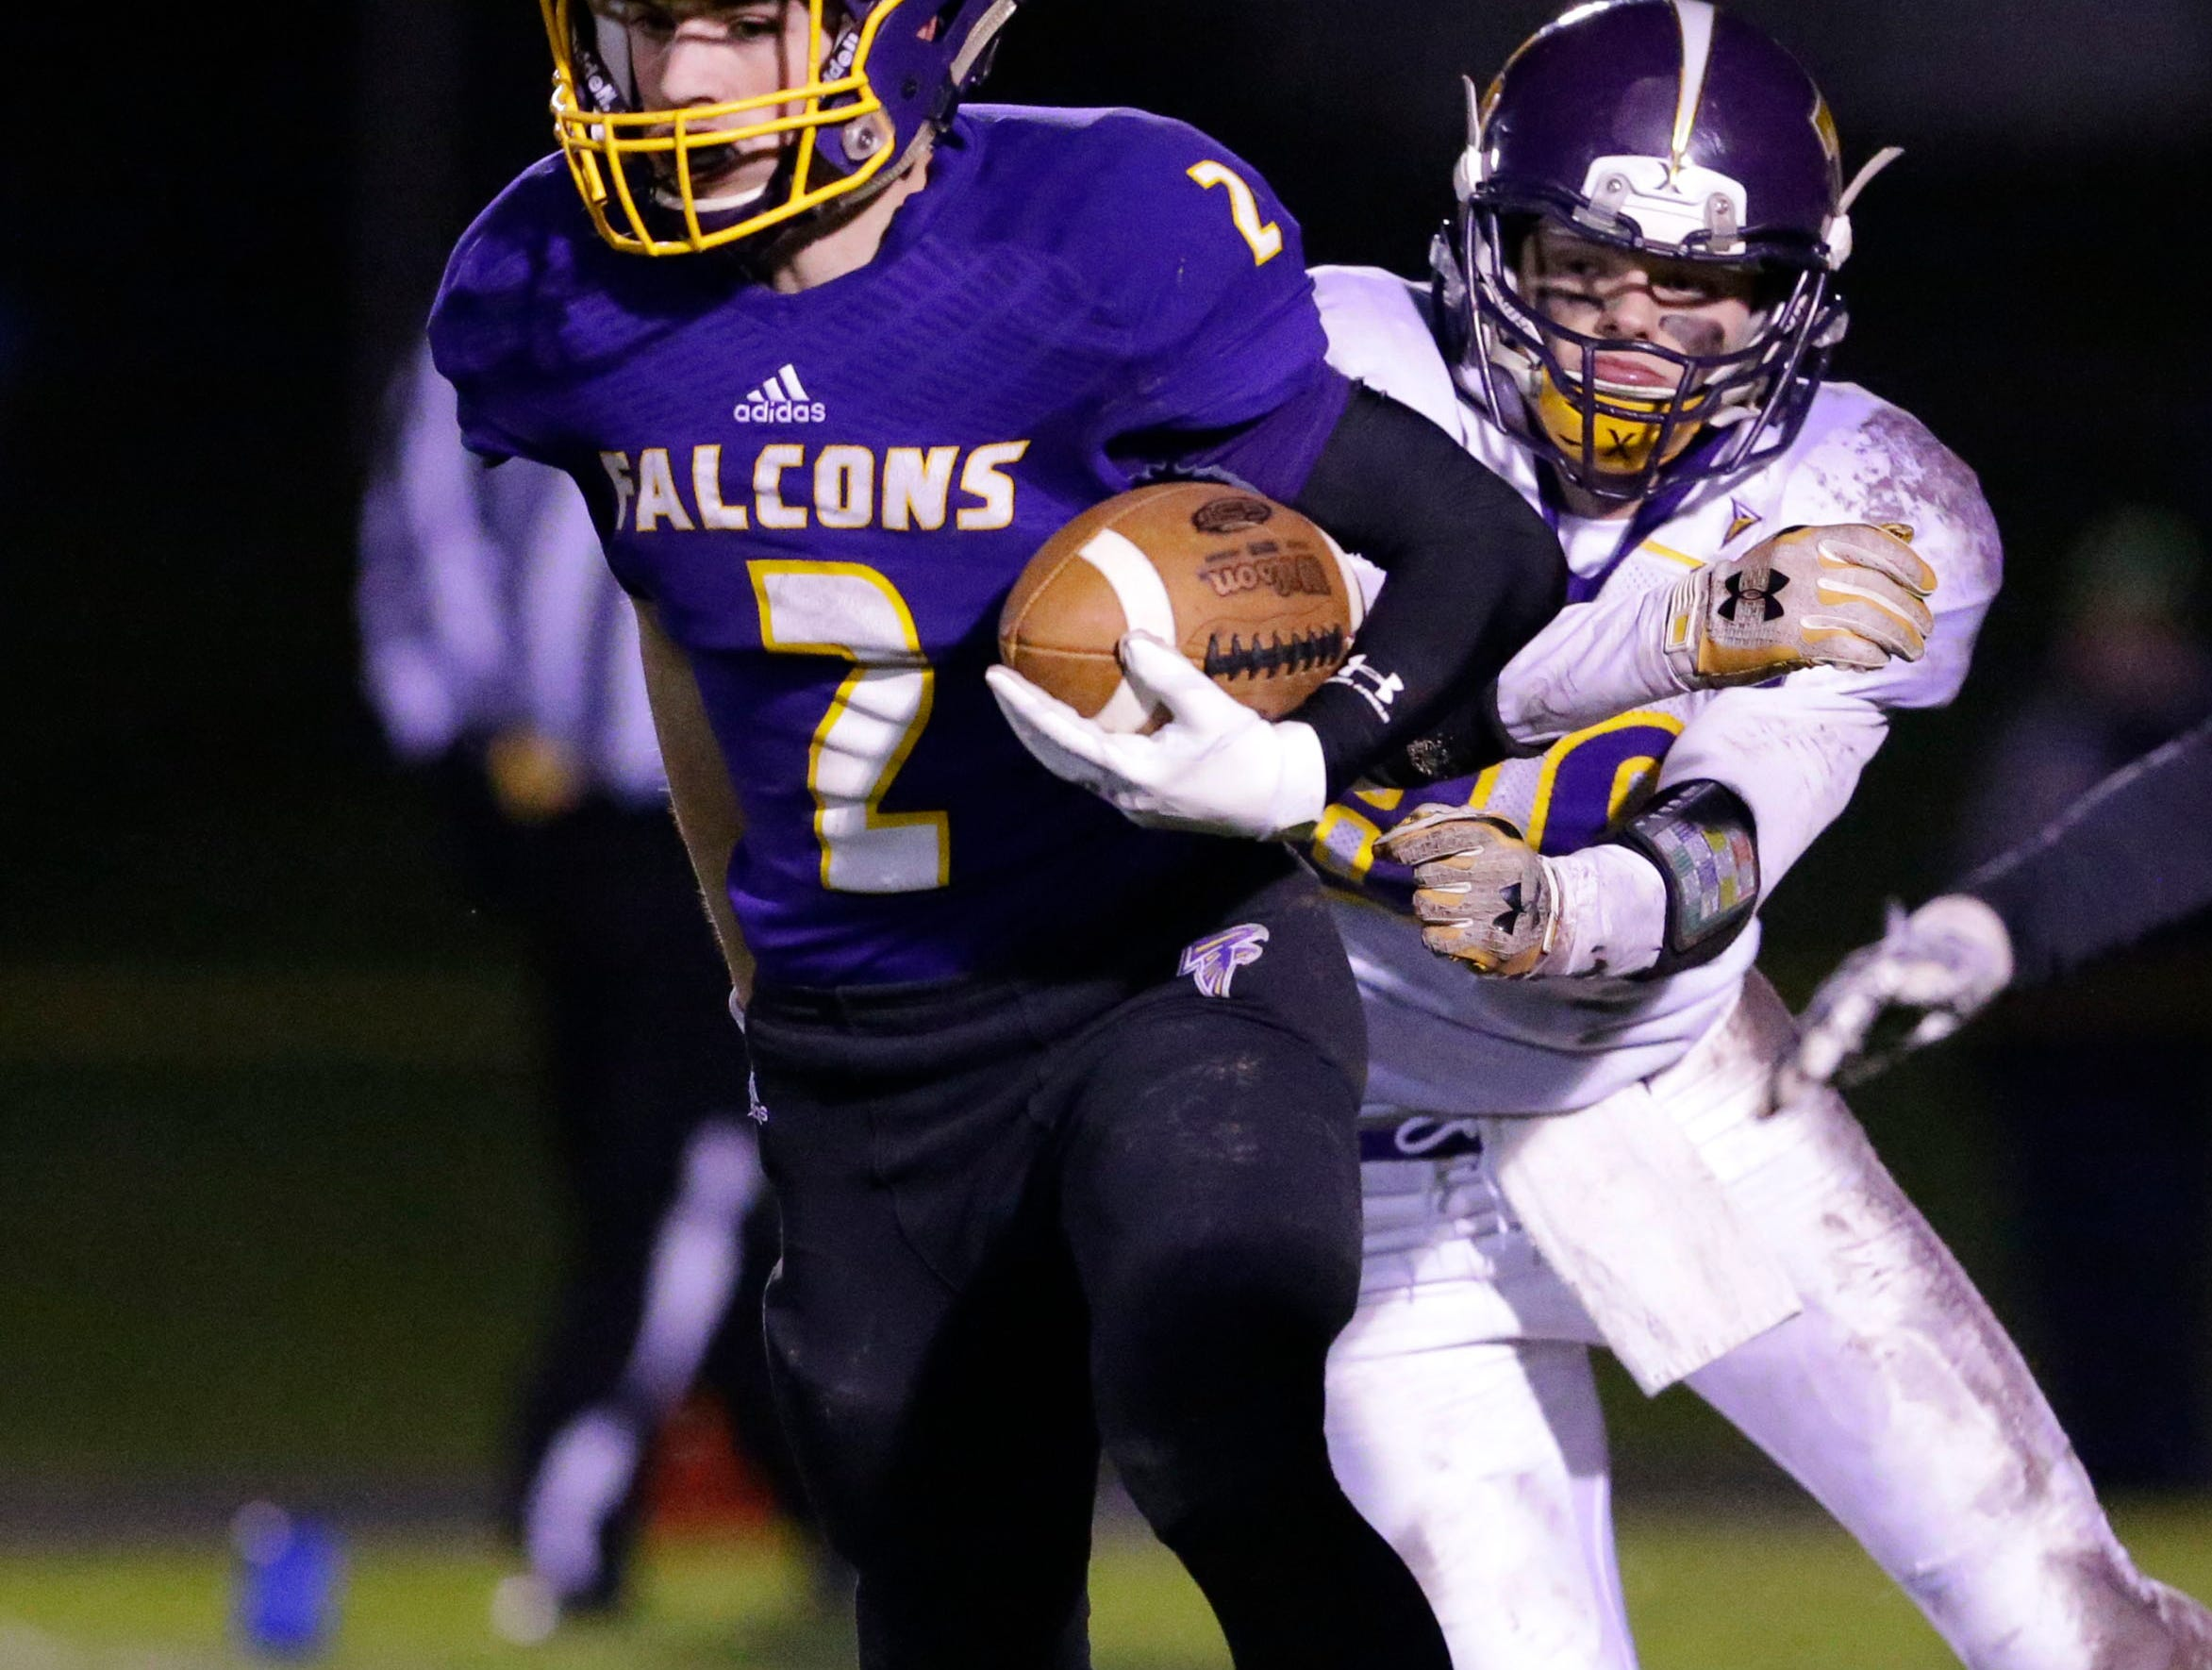 Sheboygan Falls' Daniel Fenn (2) carries the ball against Two Rivers, Friday, October 12, 2018, in Sheboygan Falls, Wis.